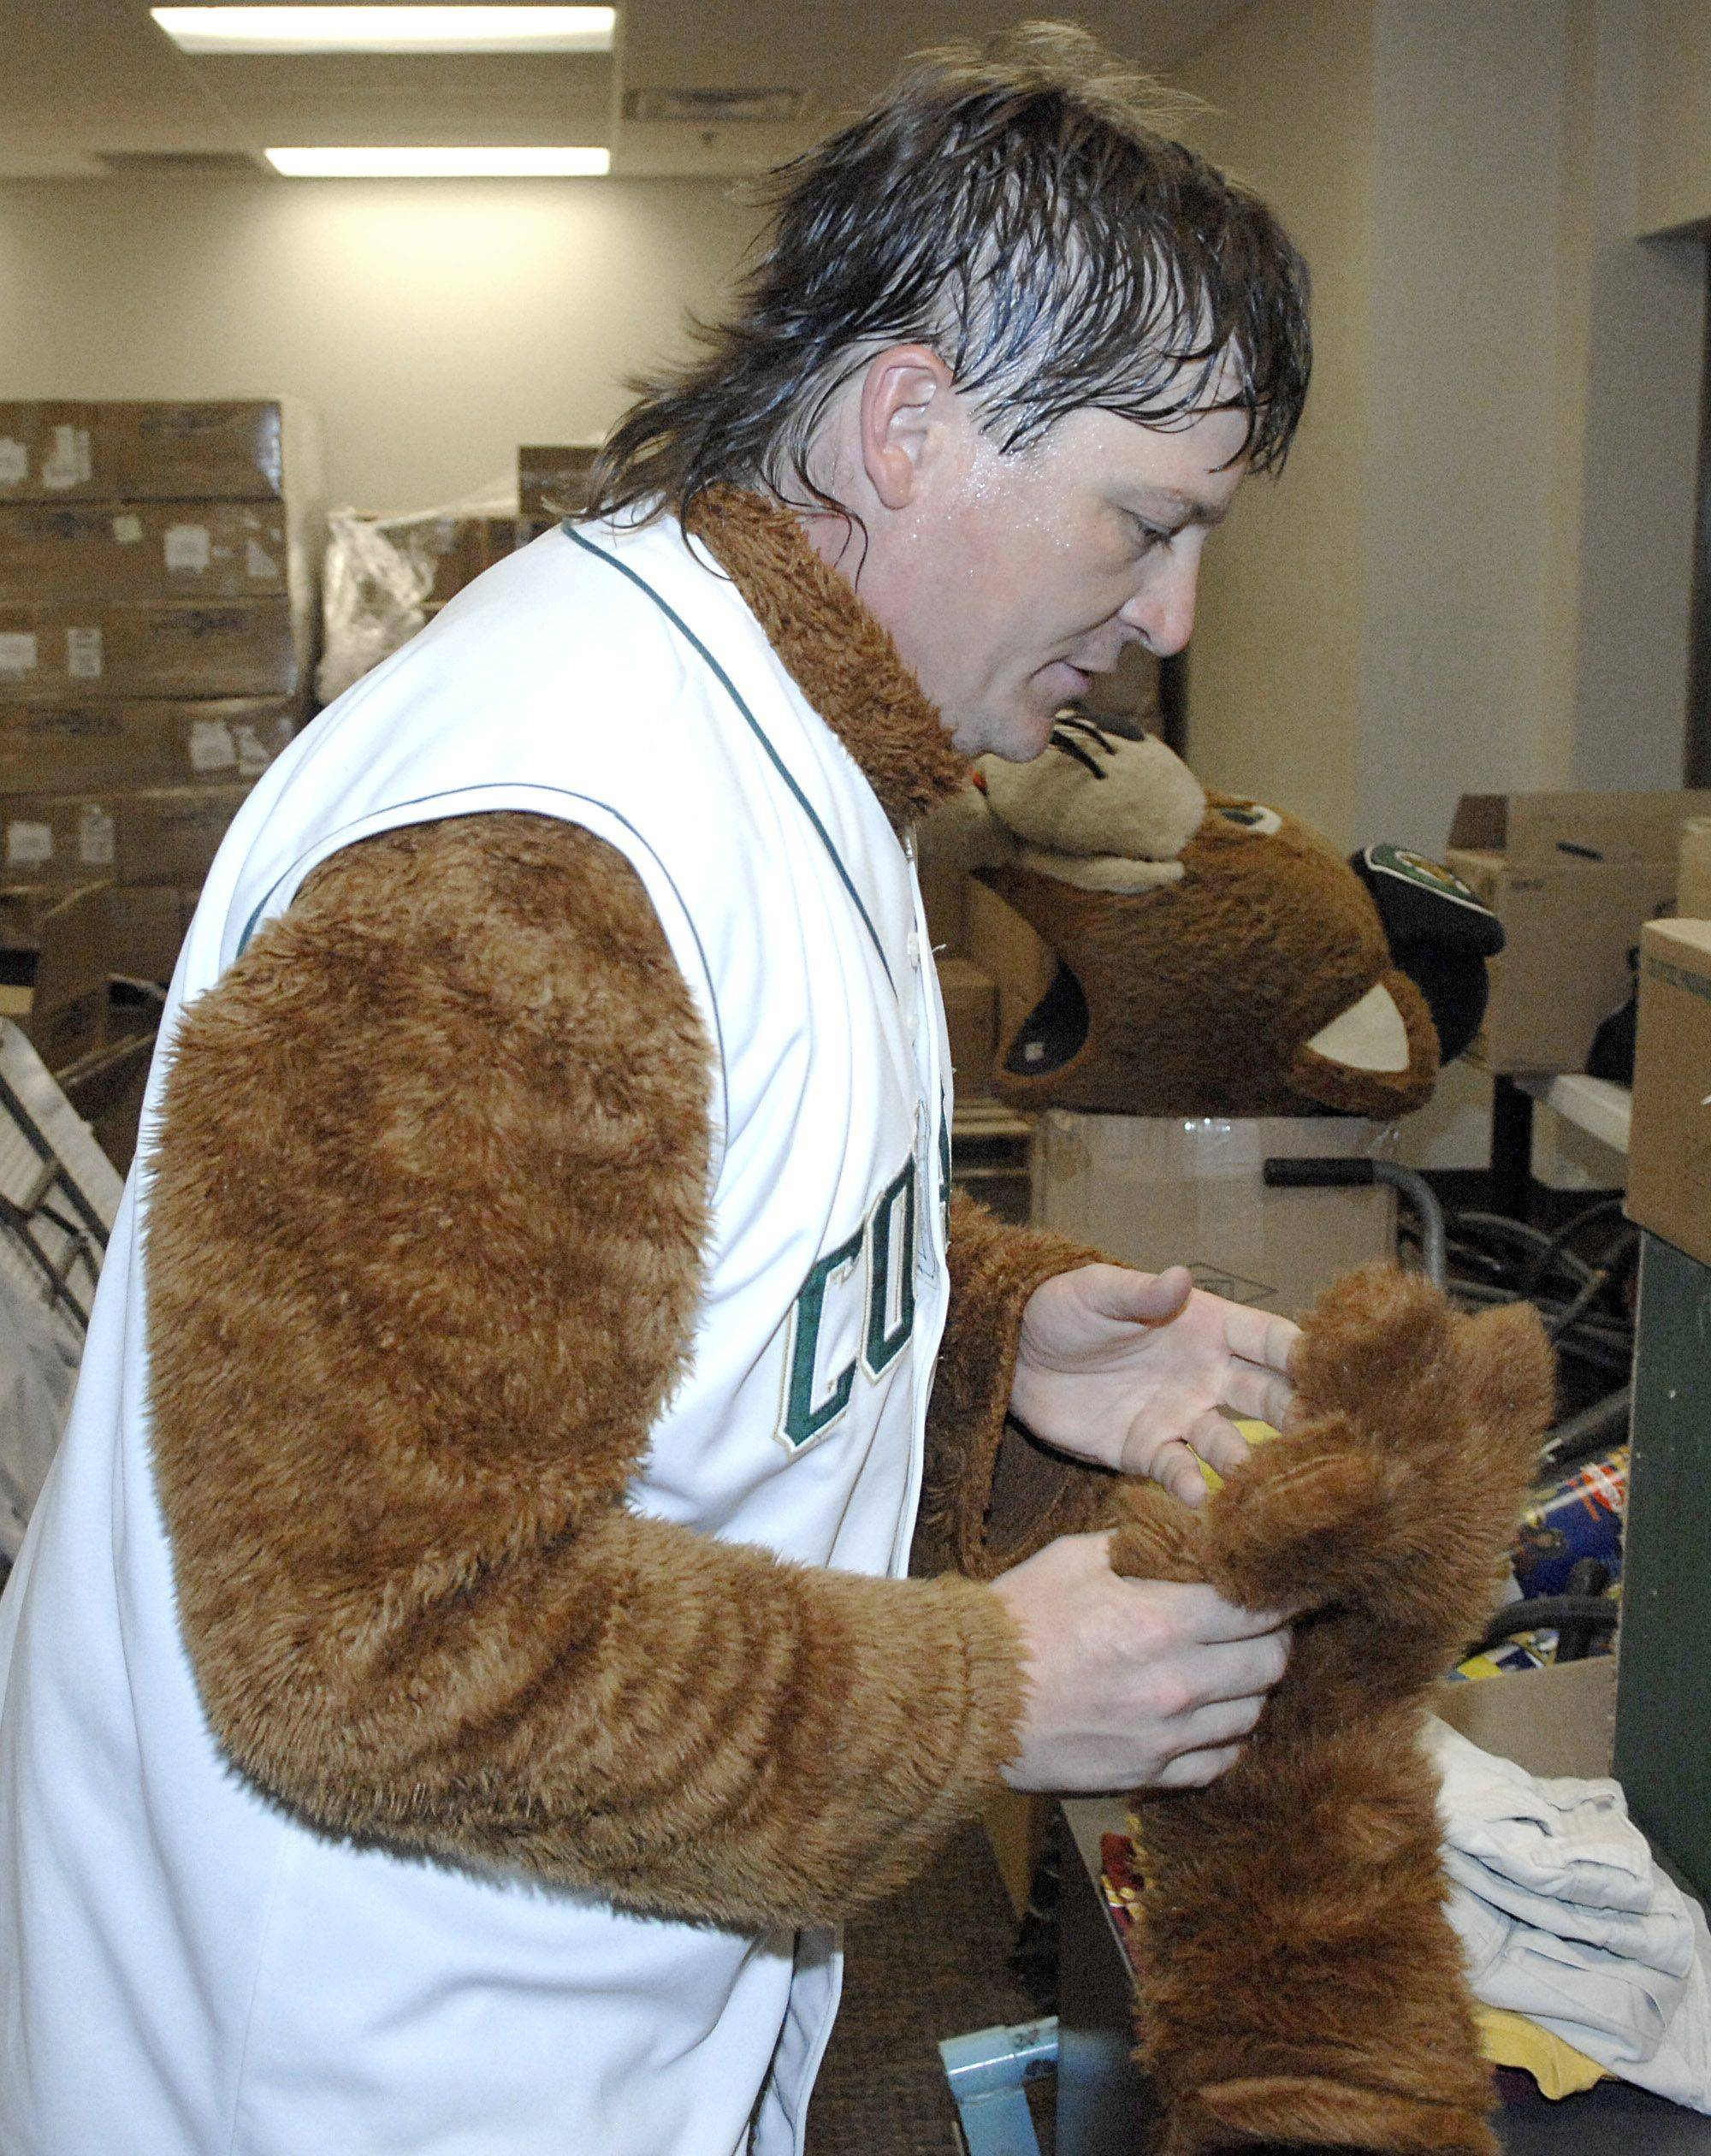 Drenched in sweat, Forrest removes his Ozzie Cougar head between innings so he can change his clothes underneath. Mike is constantly on the go, greeting and interacting with fans, so working up a sweat in the costume is easy, even on a cool early May evening.